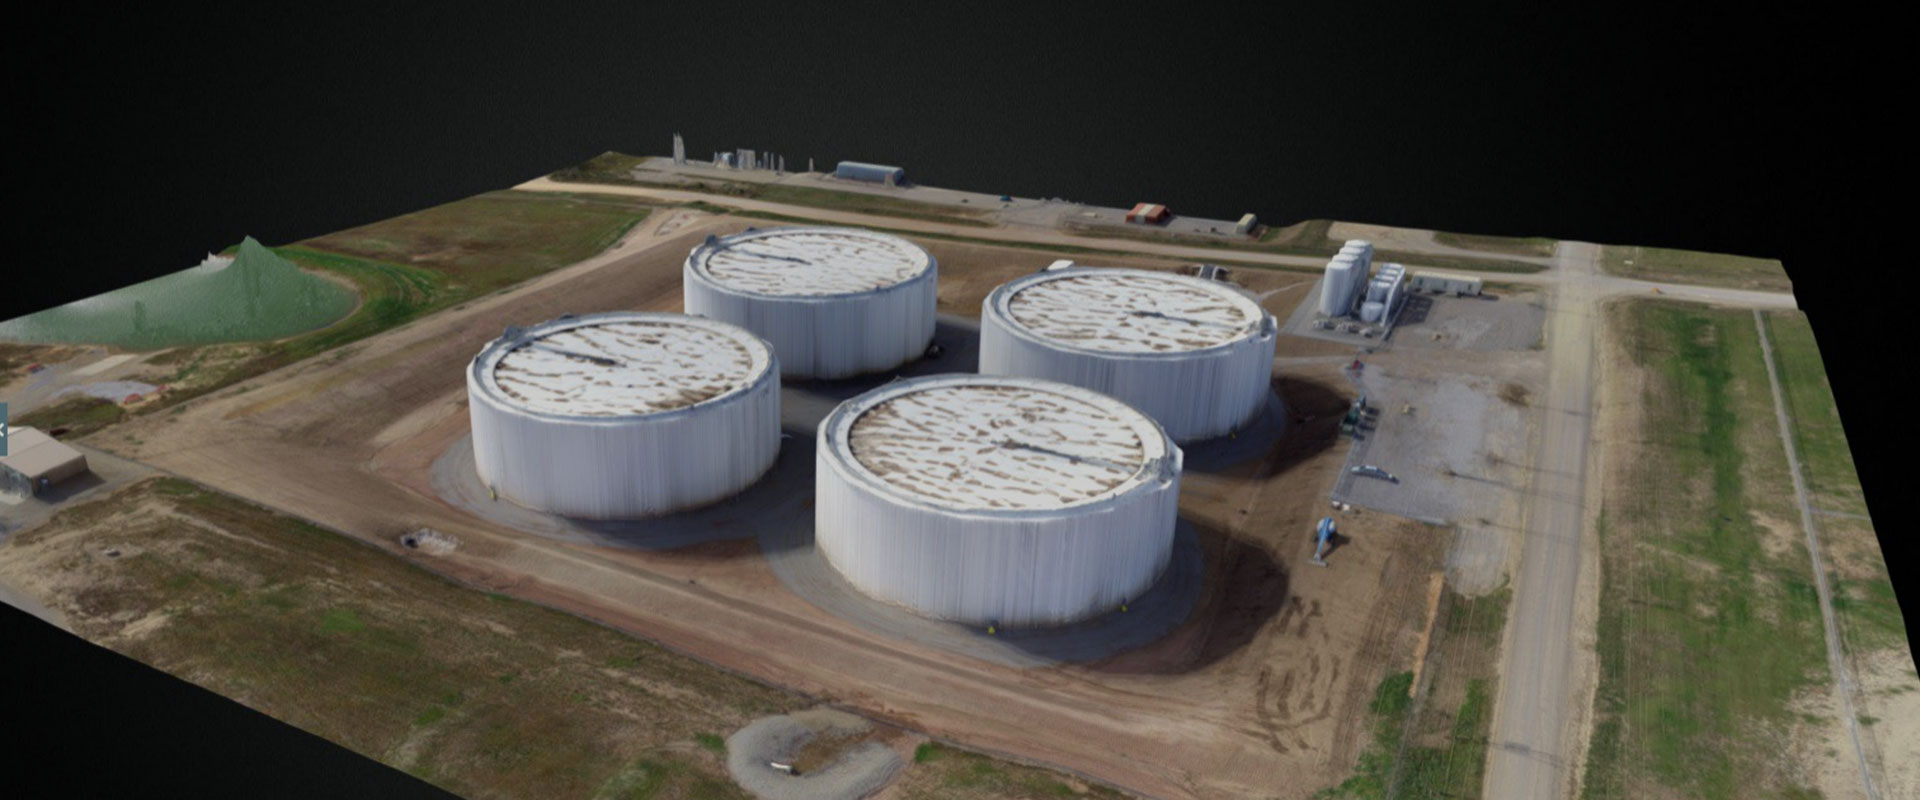 3D Mapping Oil Storage Everdrone